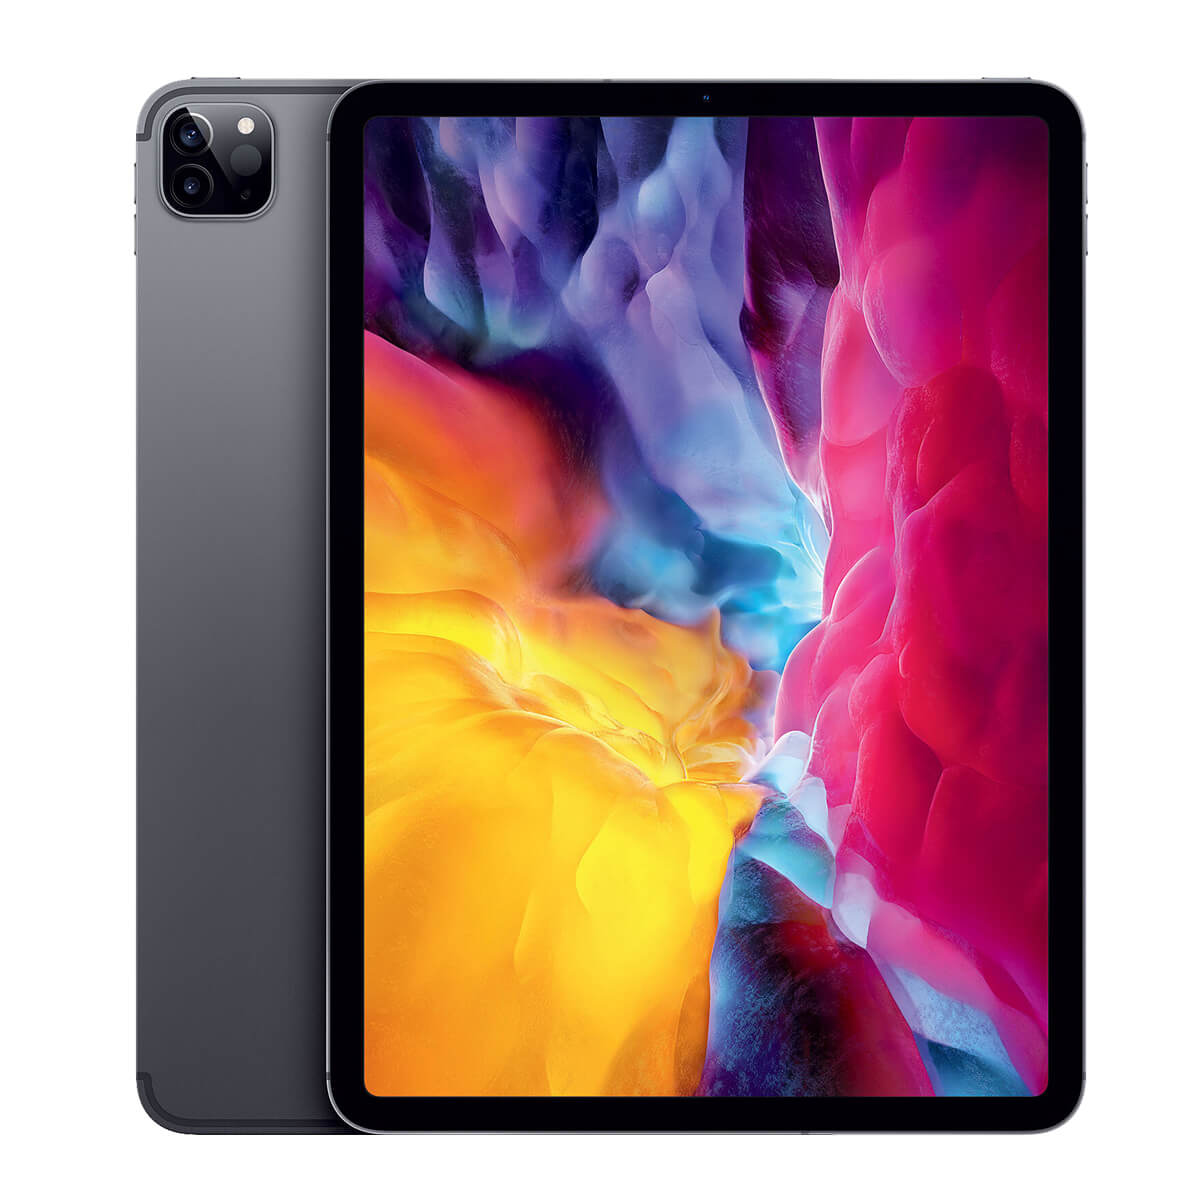 Apple 平板 iPad Pro 11 2代 Wi-Fi (128G)